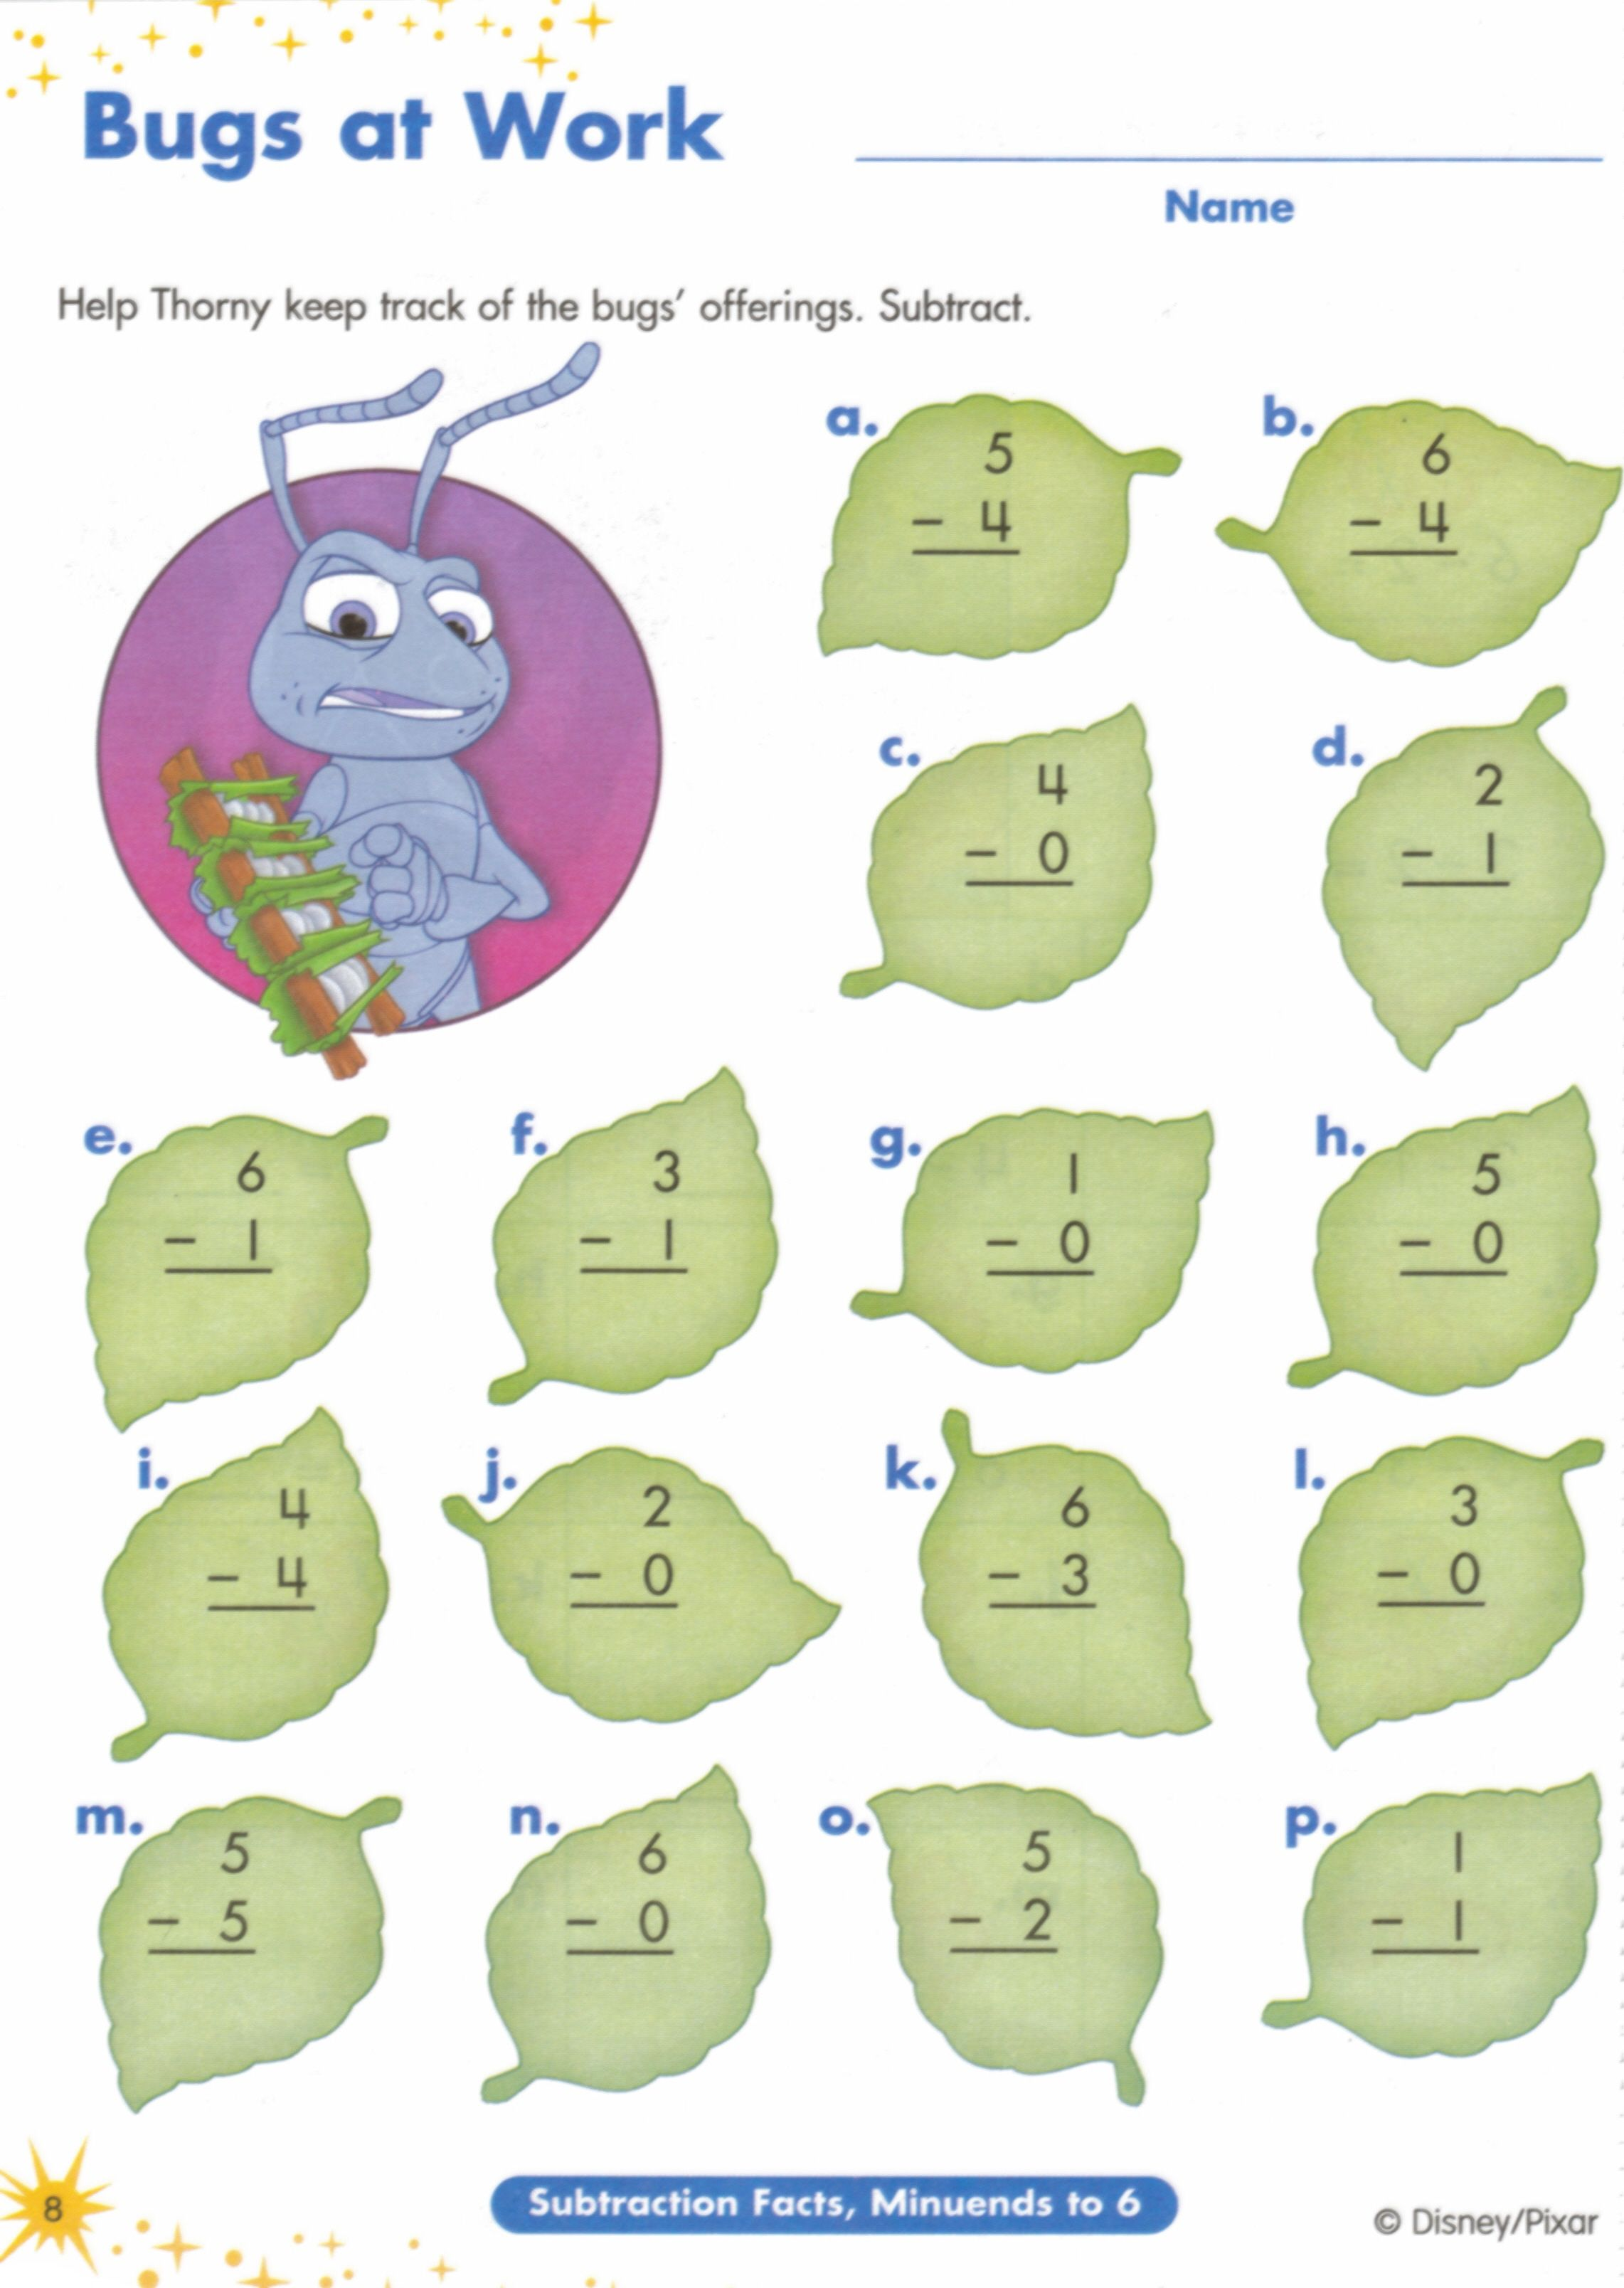 Weirdmailus  Nice  Images About Worksheets On Pinterest  Fun Facts For Kids  With Excellent  Images About Worksheets On Pinterest  Fun Facts For Kids Earth Day Worksheets And Jungles With Cool Expense Worksheet Template Also Printable Math Multiplication Worksheets In Addition Worksheets For Children And Proper Nouns And Common Nouns Worksheet As Well As Rhyming Words Worksheets For Kindergarten Additionally Little House On The Prairie Worksheets From Pinterestcom With Weirdmailus  Excellent  Images About Worksheets On Pinterest  Fun Facts For Kids  With Cool  Images About Worksheets On Pinterest  Fun Facts For Kids Earth Day Worksheets And Jungles And Nice Expense Worksheet Template Also Printable Math Multiplication Worksheets In Addition Worksheets For Children From Pinterestcom